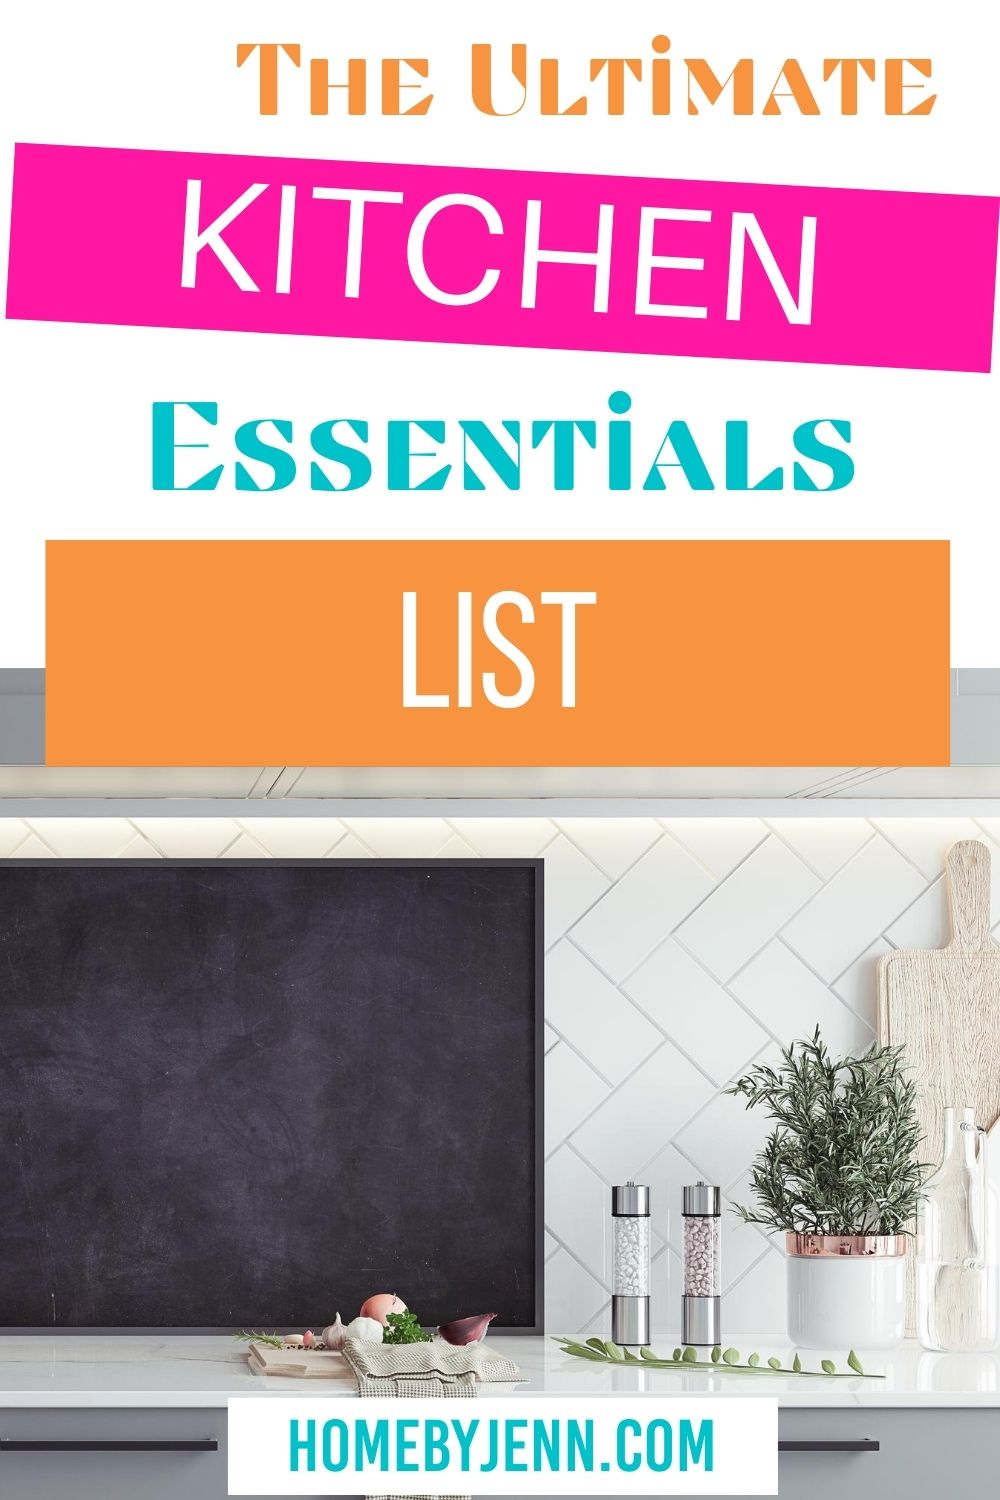 Enjoy cooking in a kitchen with all of the essentials. In this post, you'll learn the kitchen essentials list so you'll have a kitchen stocked with what you need to be successful in the kitchen. via @homebyjenn